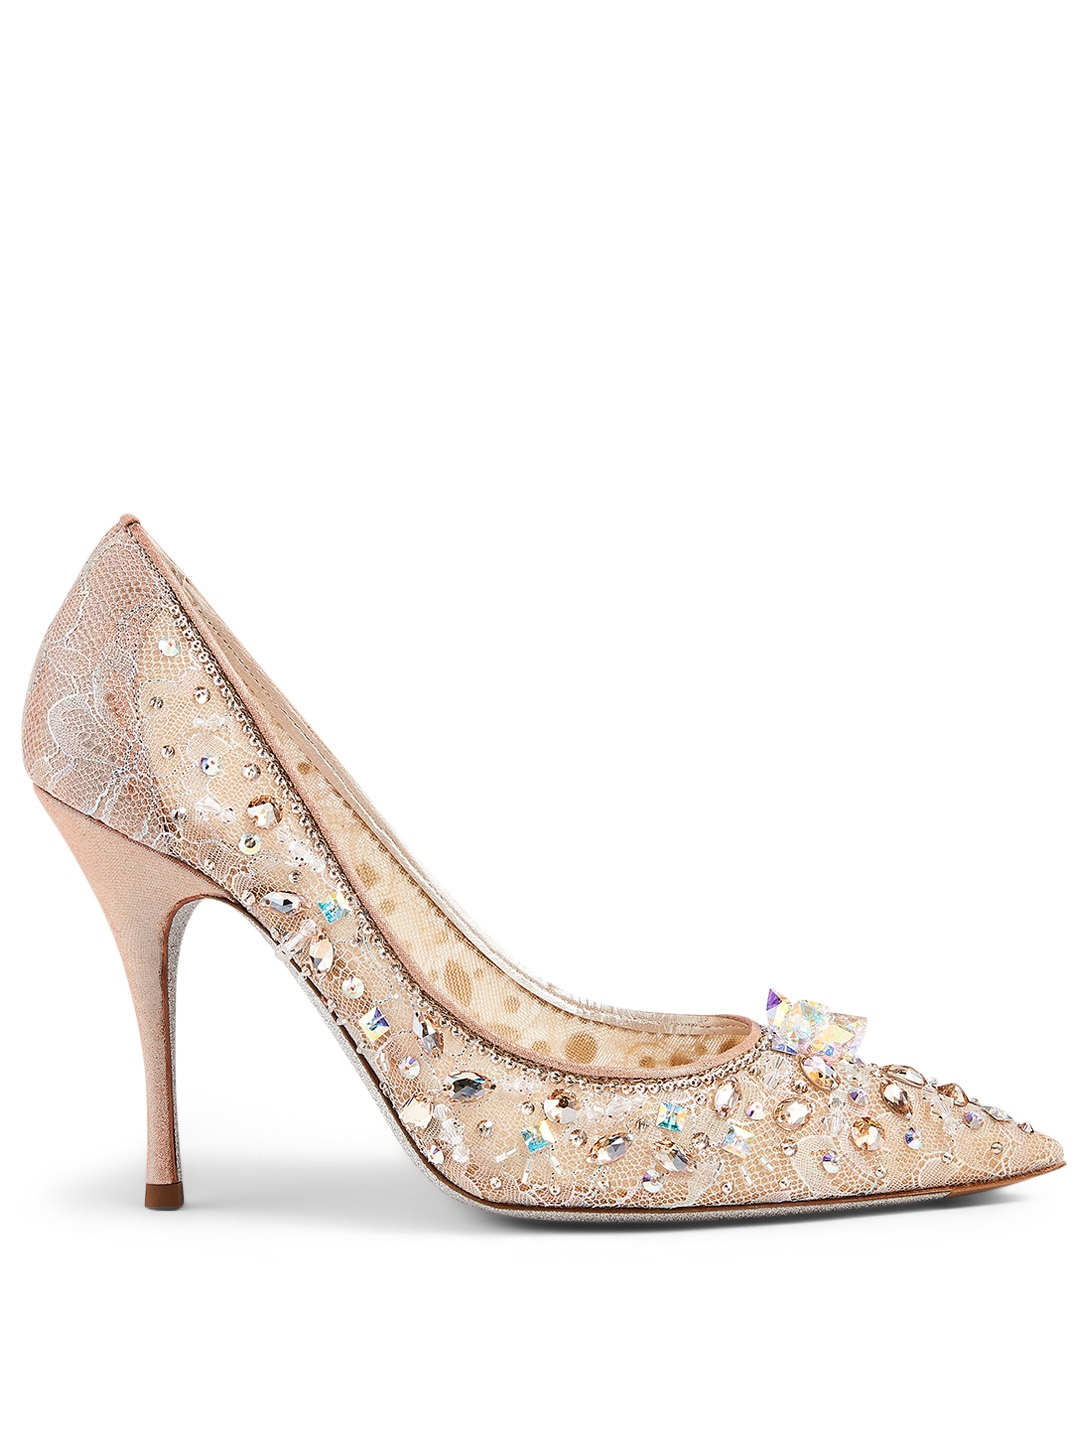 RENE CAOVILLA Cinderella Decollette 100 Crystal Lace Pumps Women's Beige